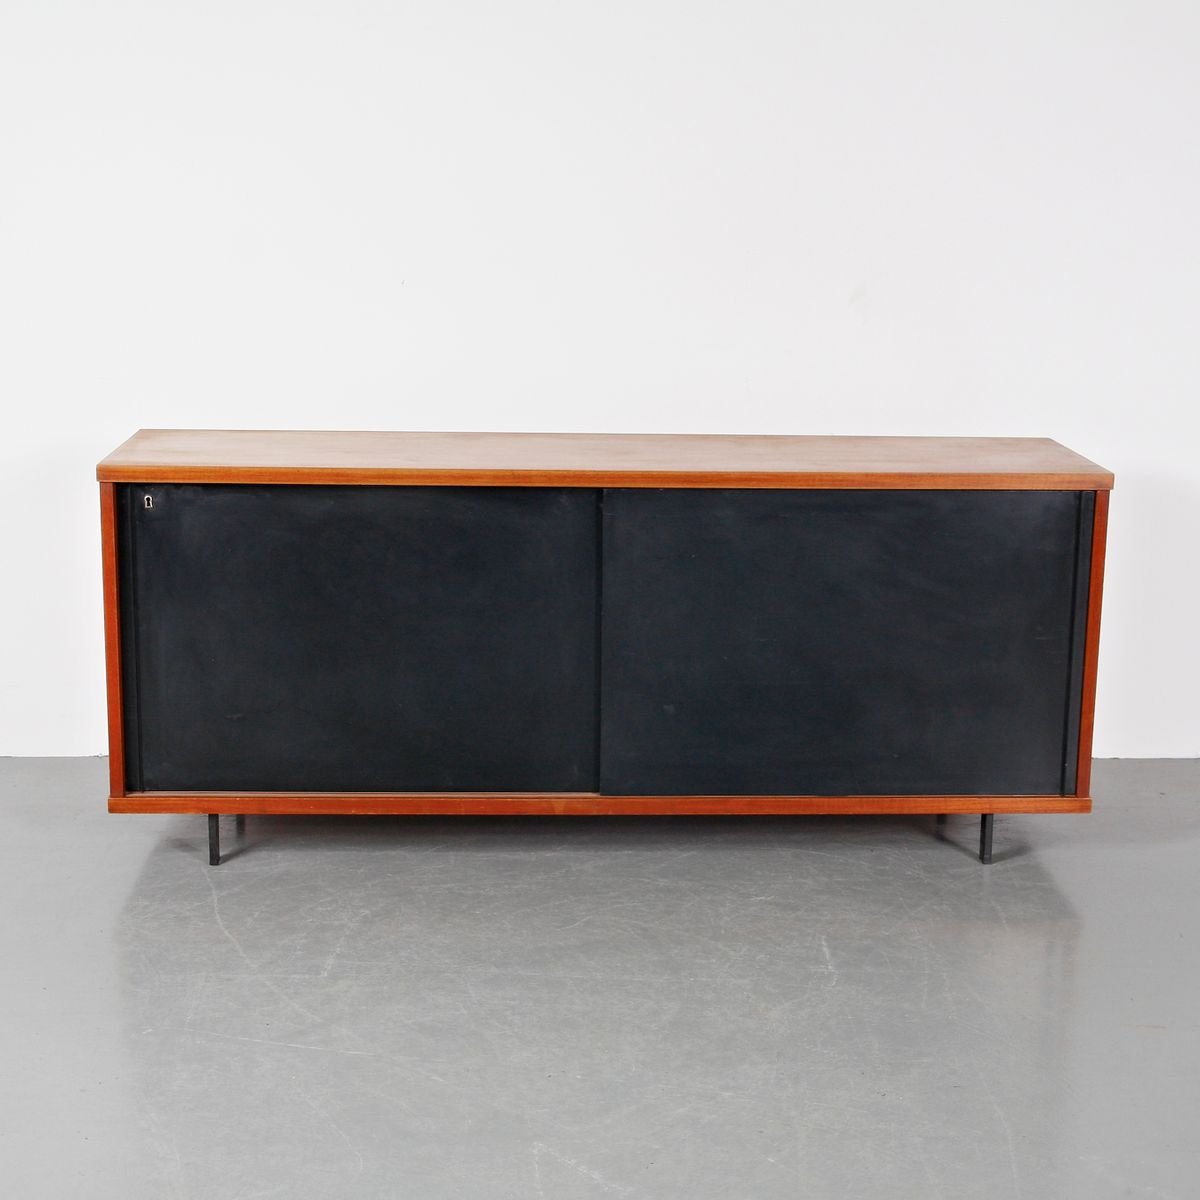 sideboard aus eichenholz metall von cees braakman f r pastoe circa 1950 bei pamono kaufen. Black Bedroom Furniture Sets. Home Design Ideas